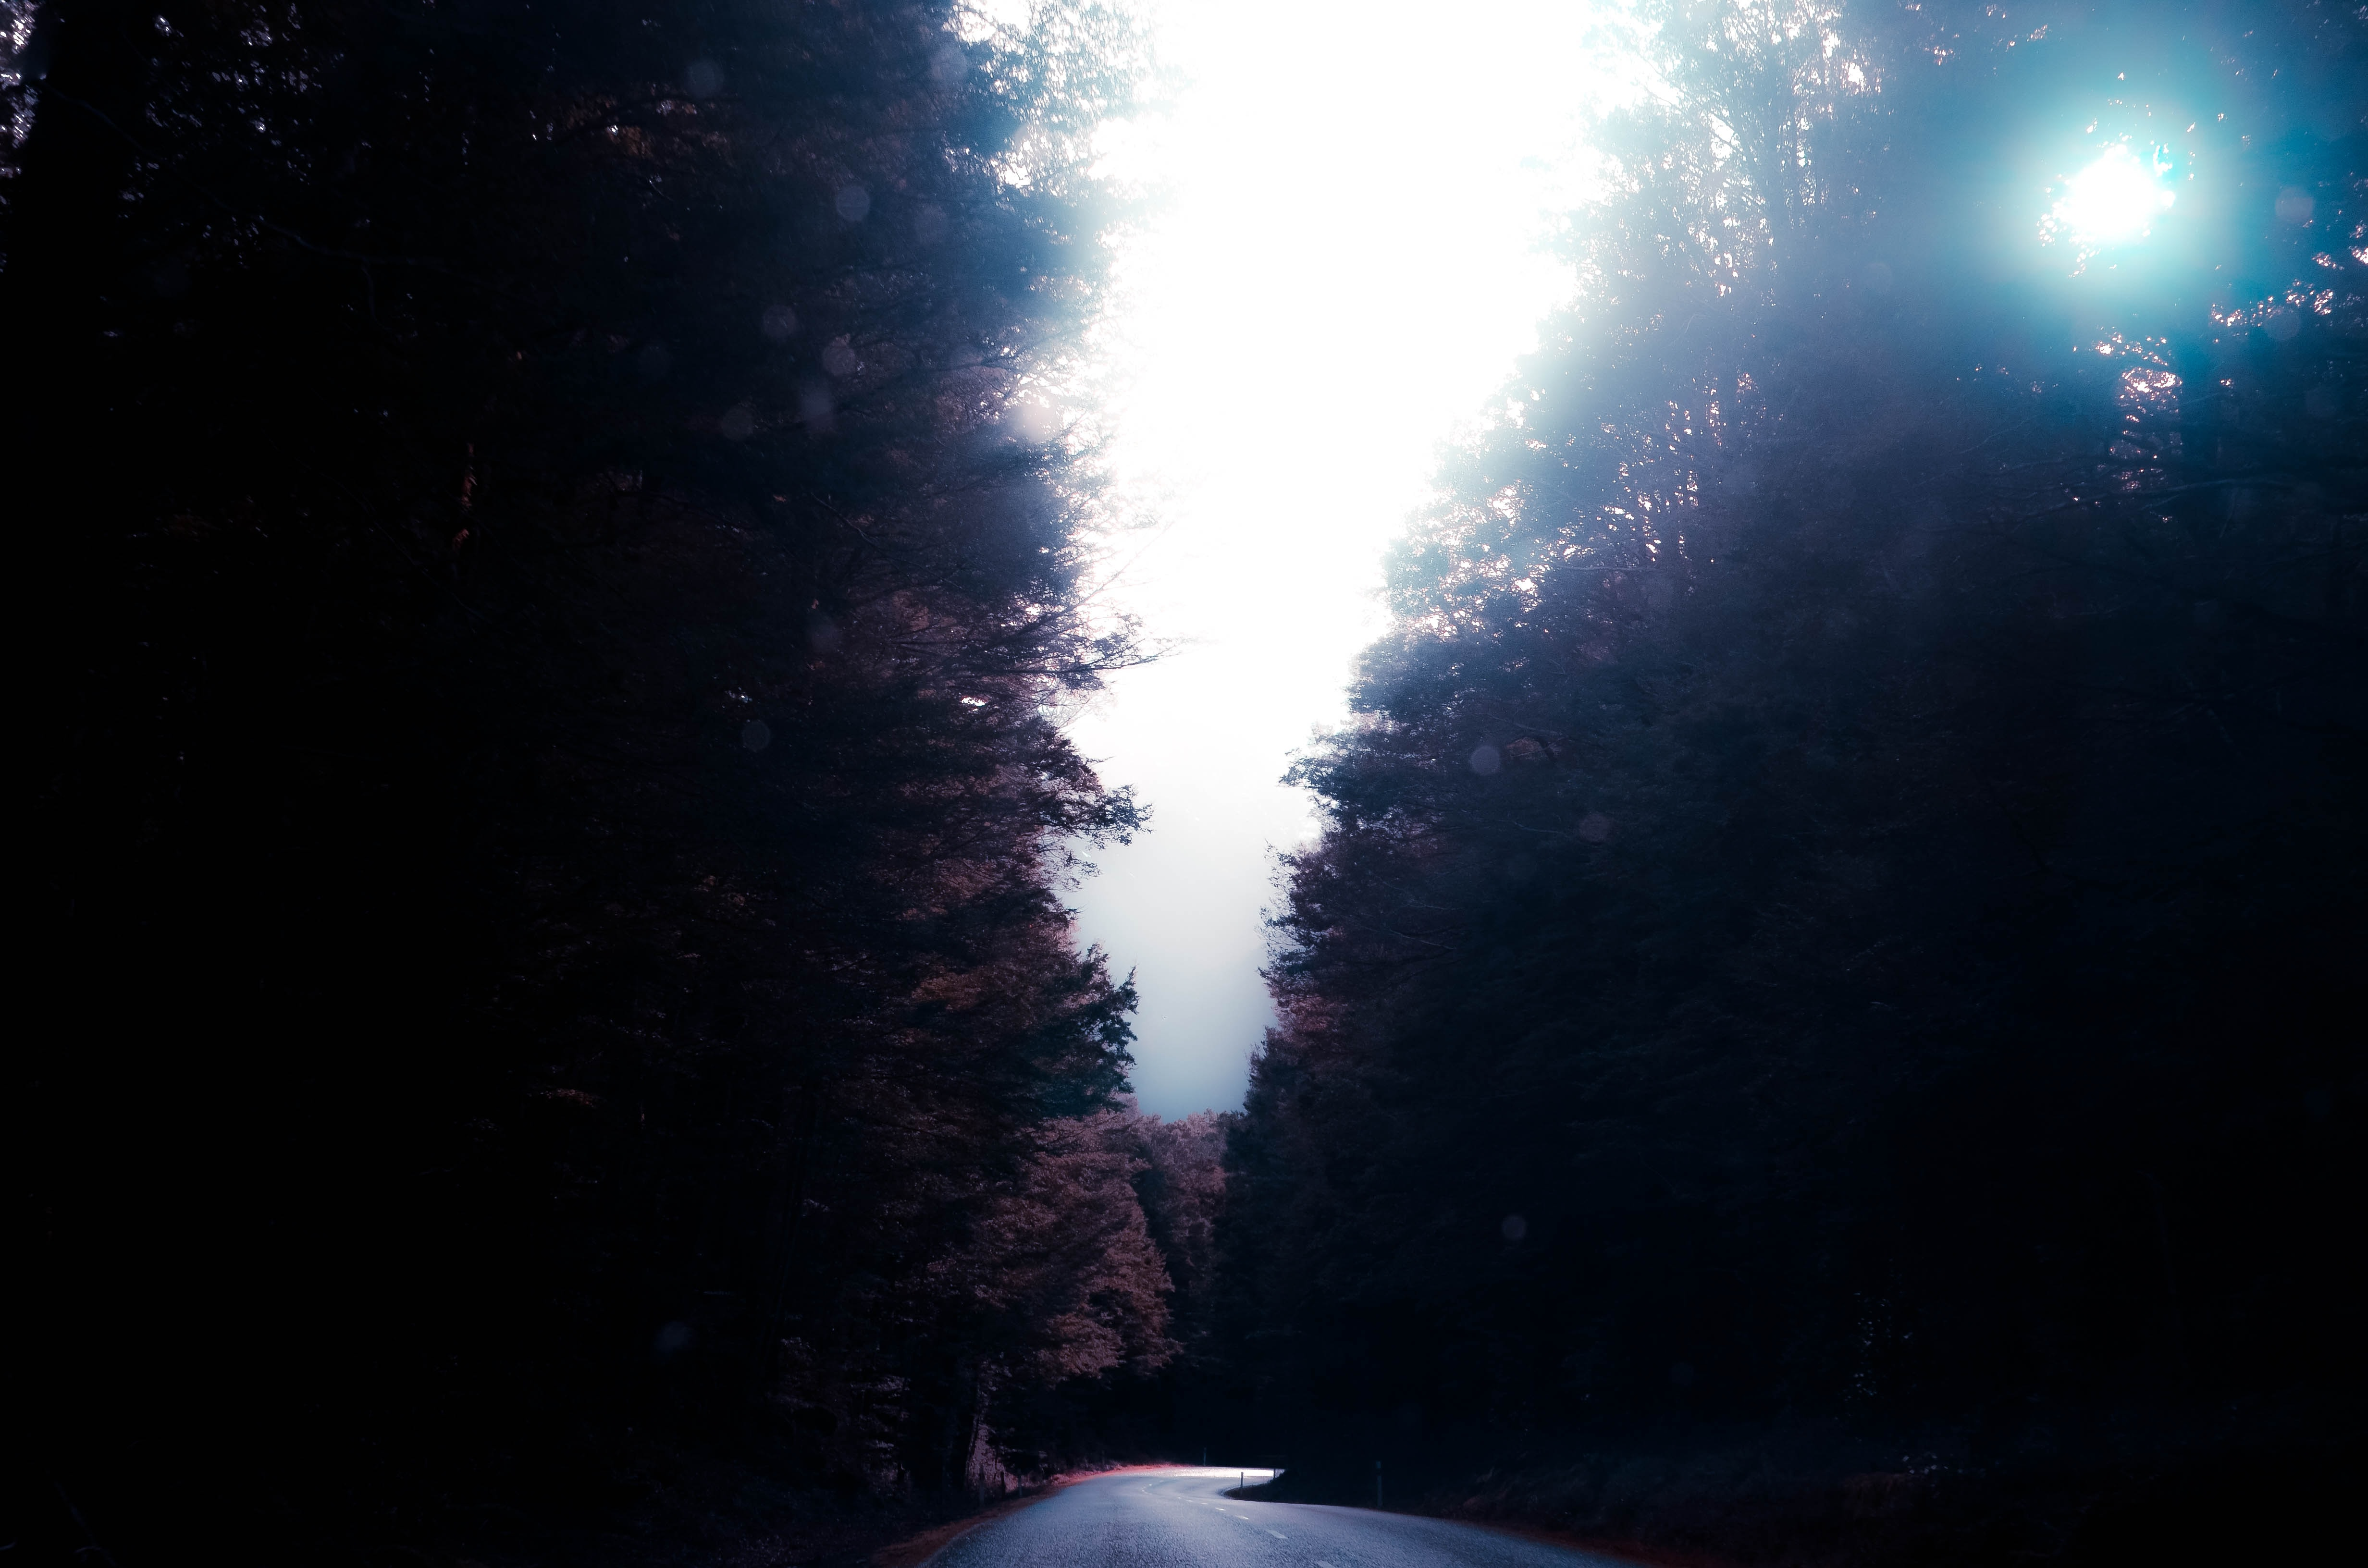 Sun breaking through the treetops over a tree-lined road